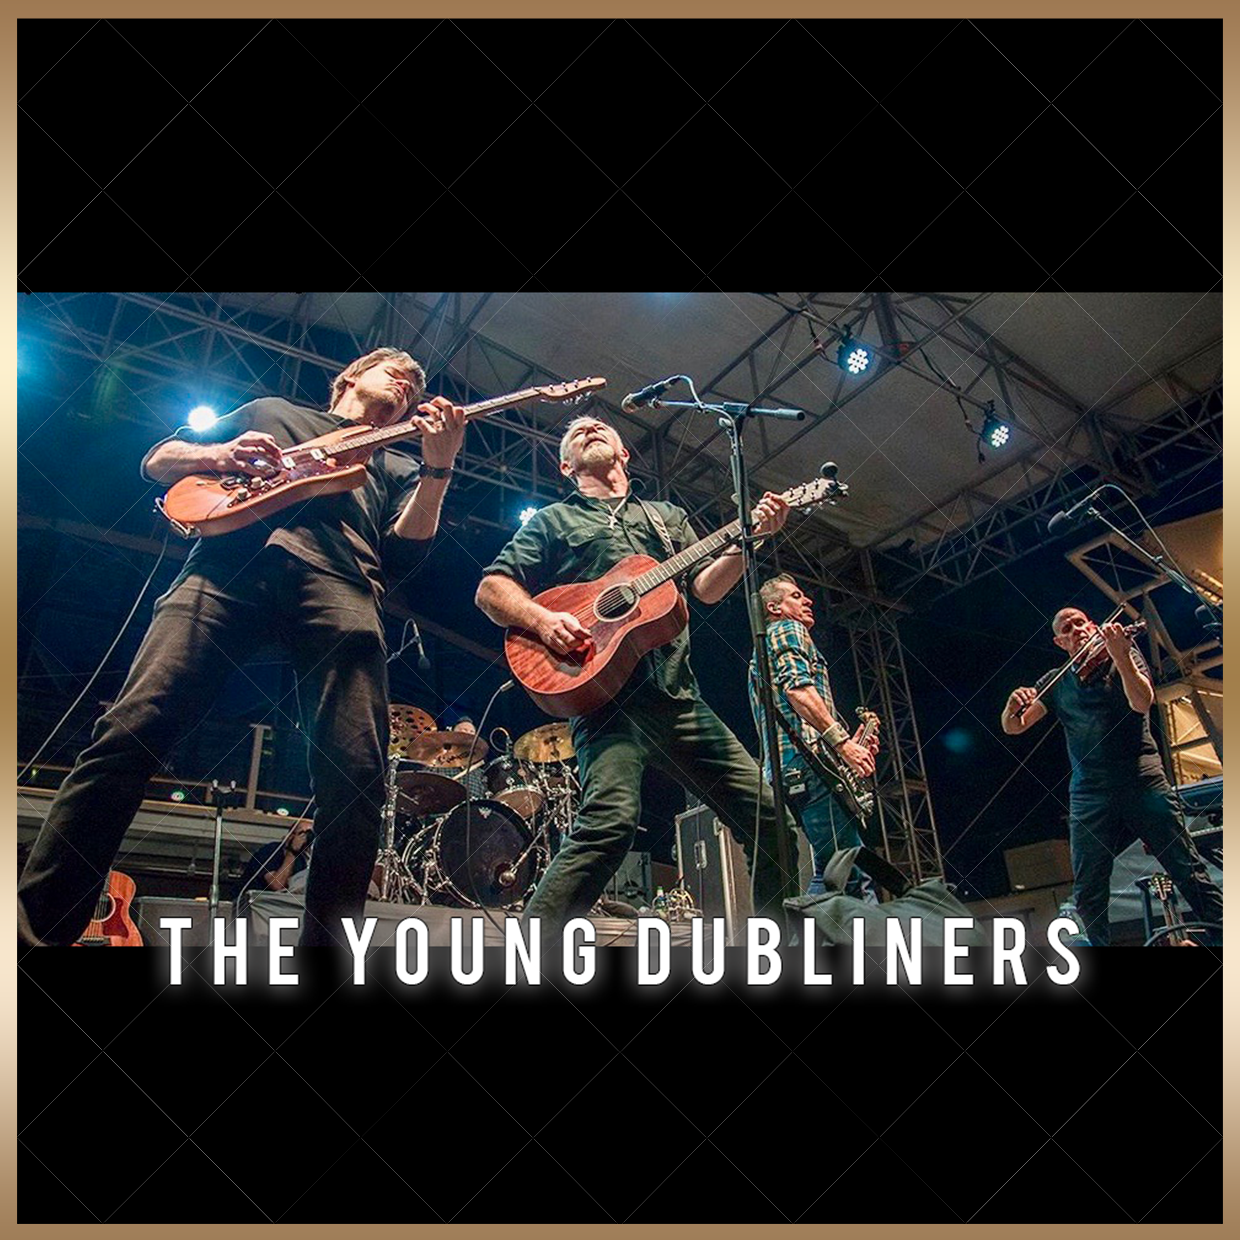 theyoungdubliners